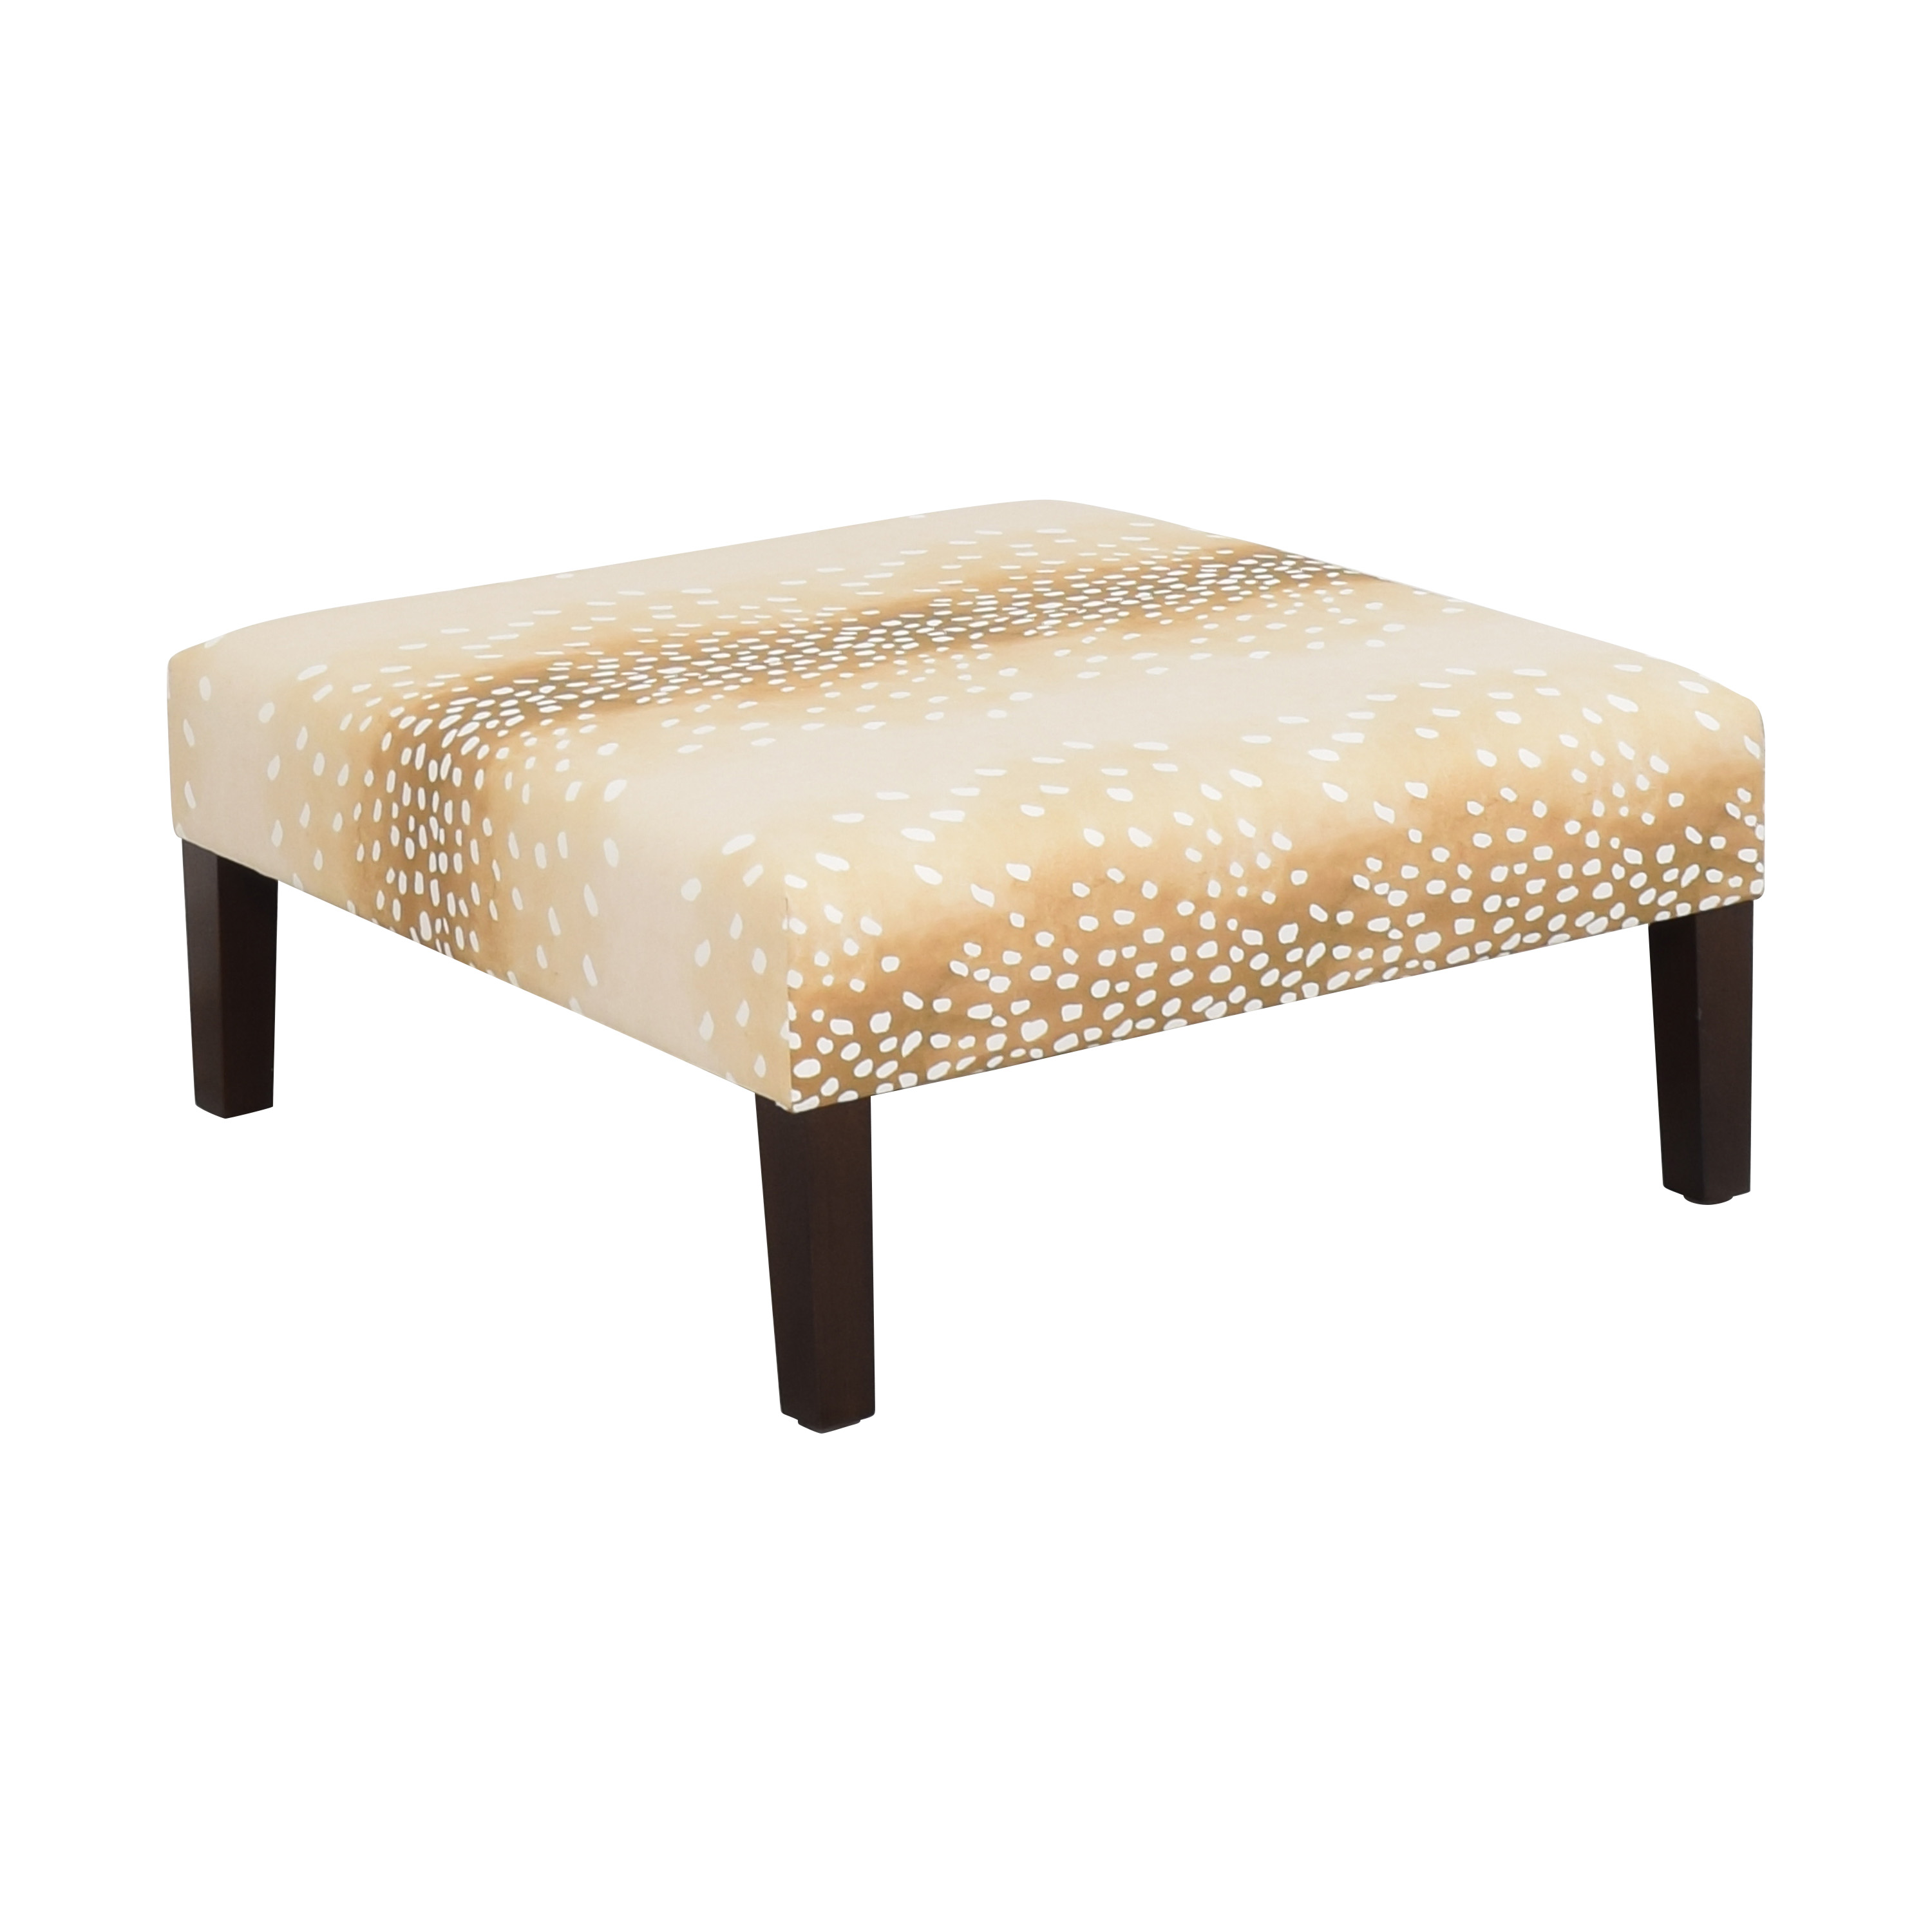 shop The Inside The Inside Fawn Cocktail Ottoman online